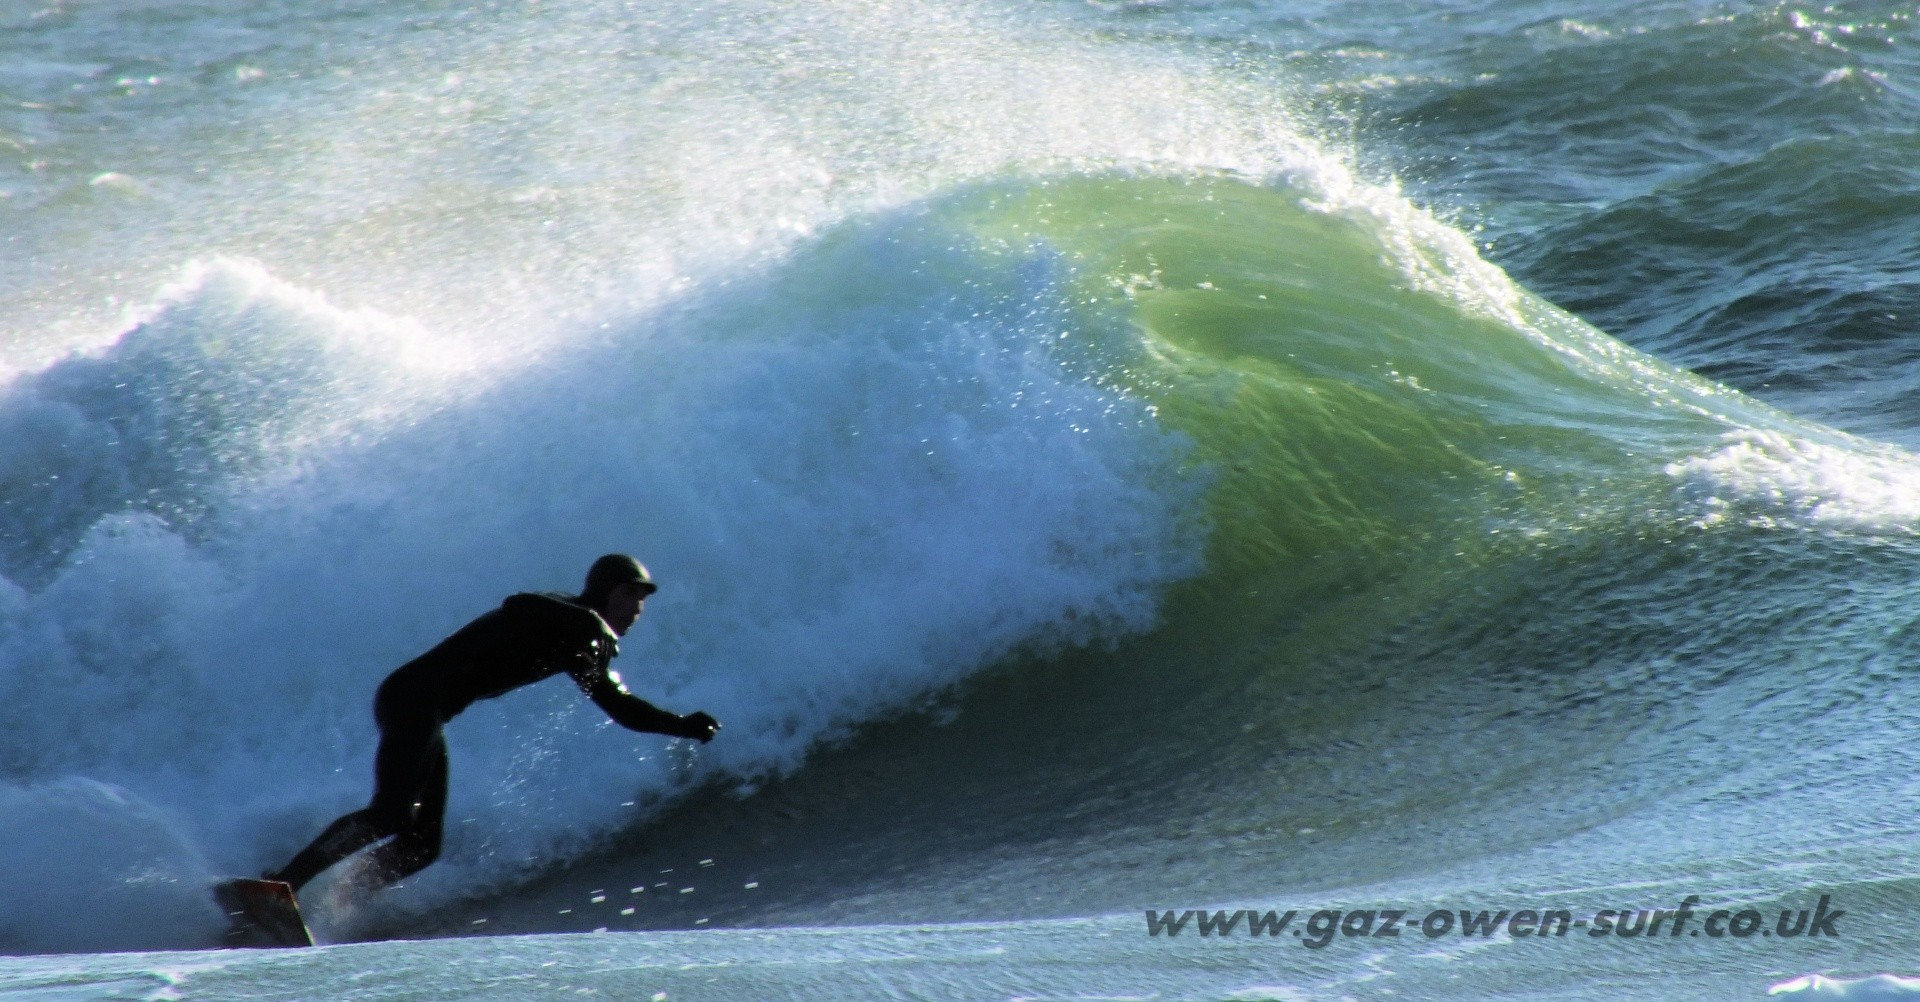 go-surf's photo of Hells Mouth (Porth Neigwl)